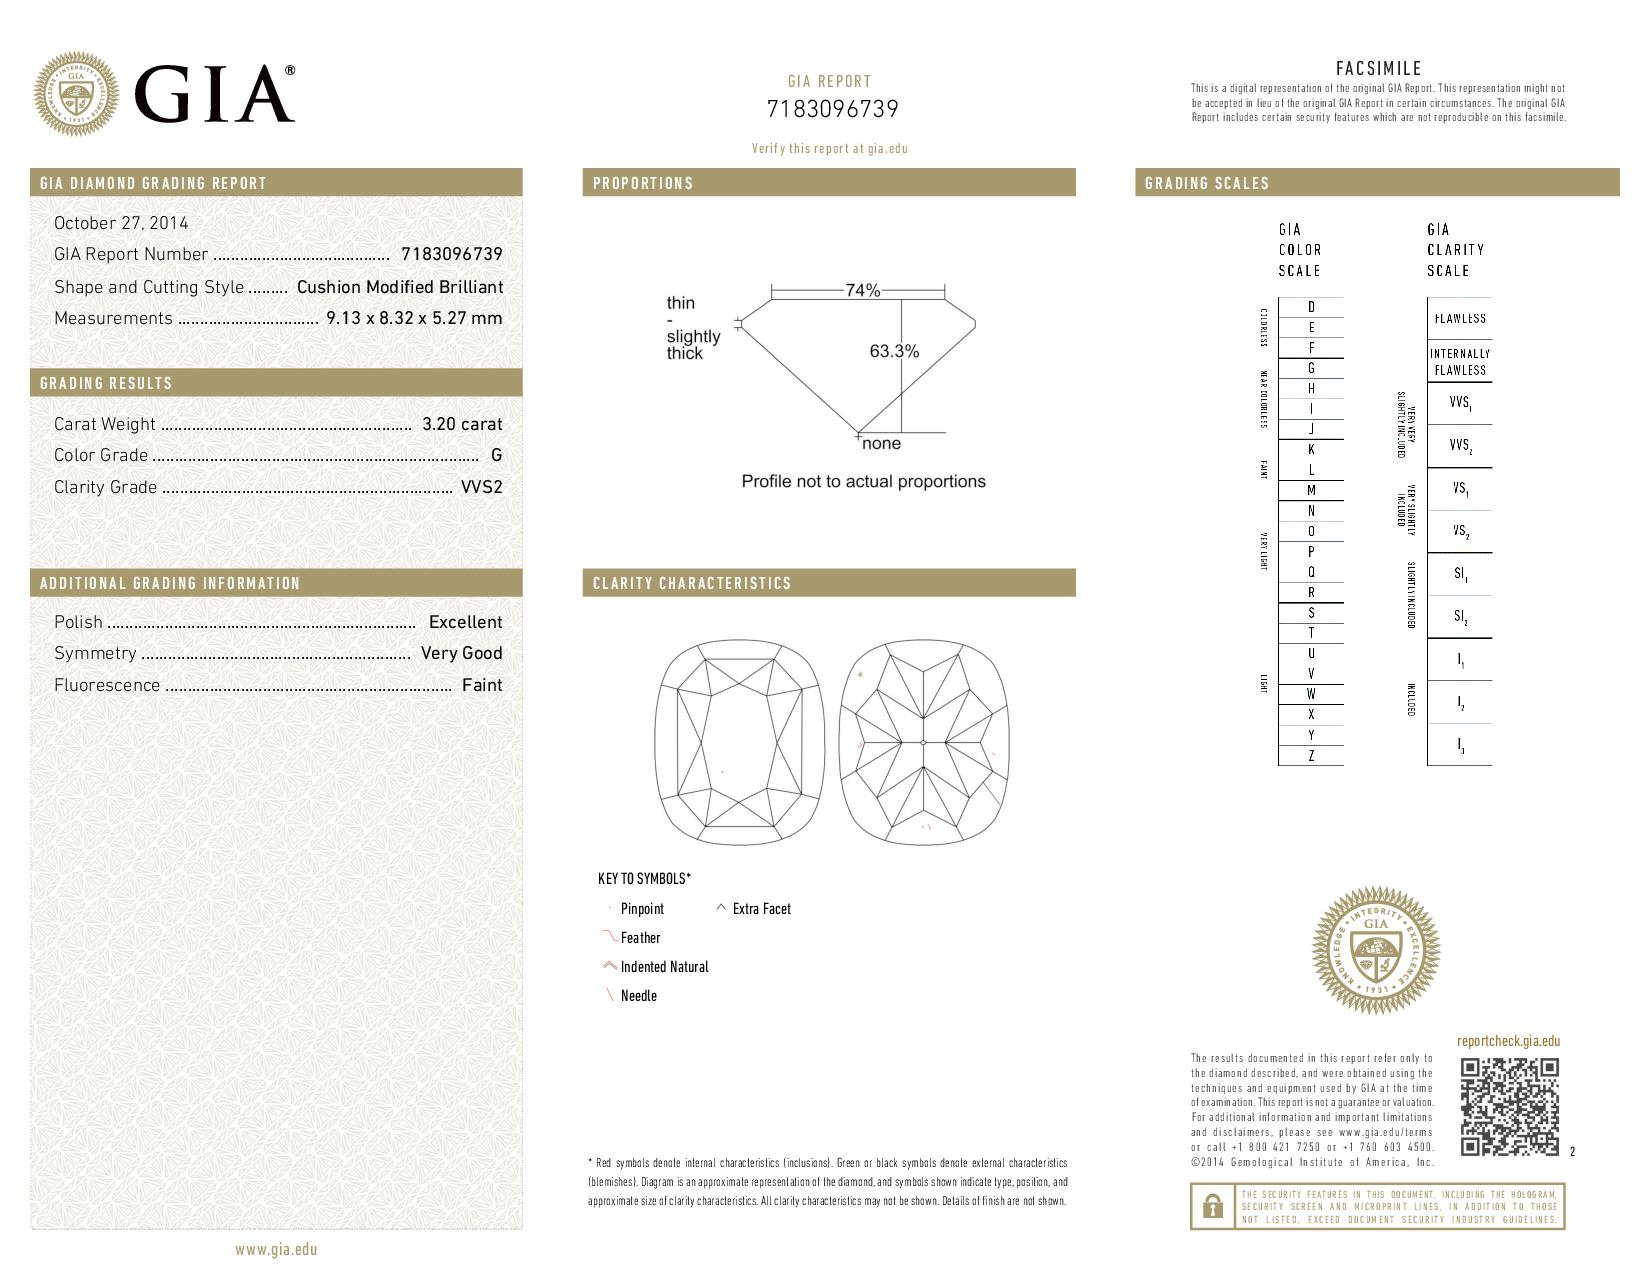 This is a 3.20 carat cushion shape, G color, VVS2 clarity natural diamond accompanied by a GIA grading report.